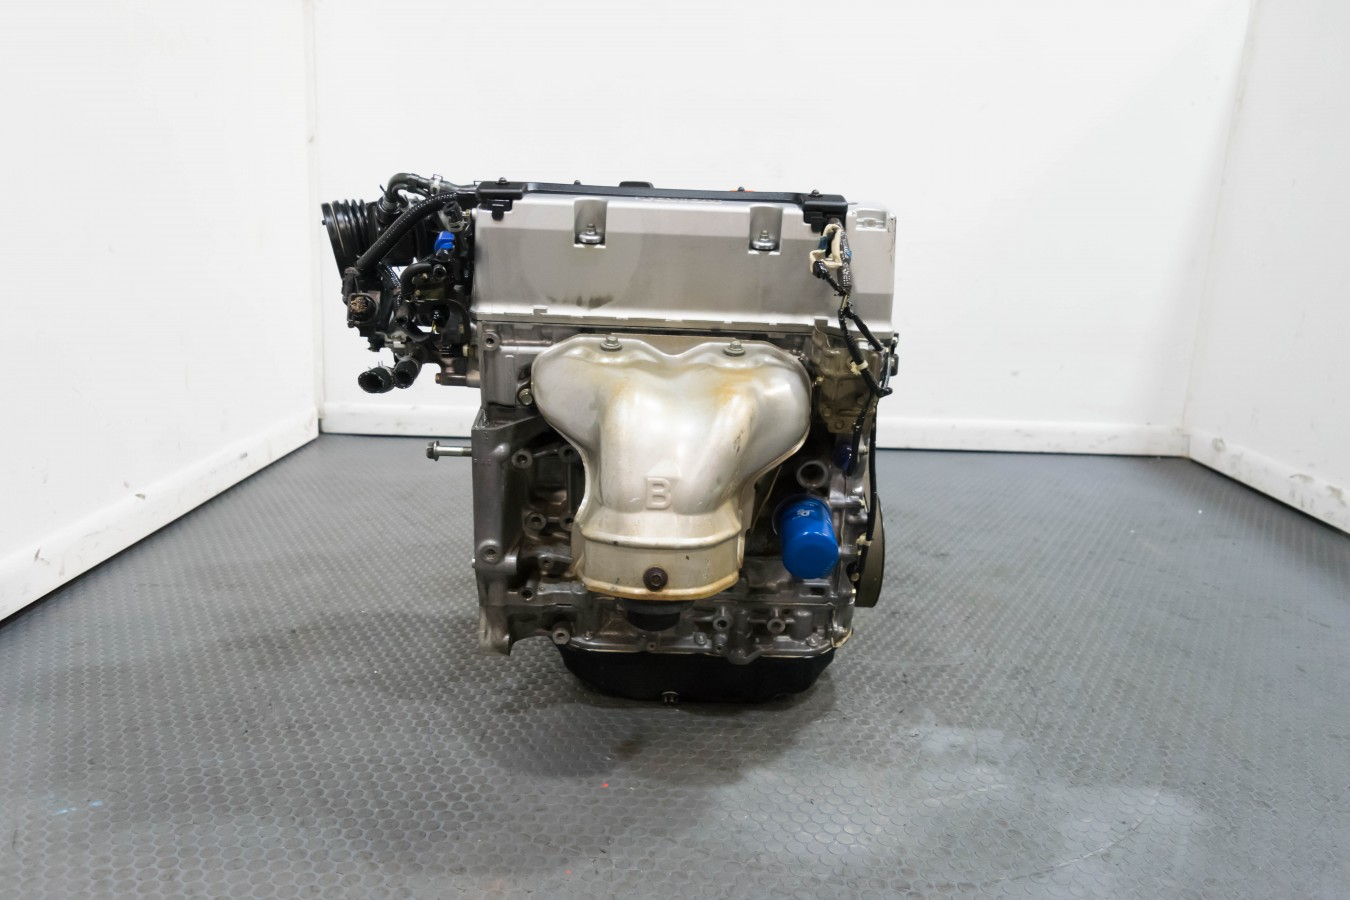 Low Mileage K24A2 for Acura TSX Honda Accord high compression engine with  90 Day warranty on engine internals